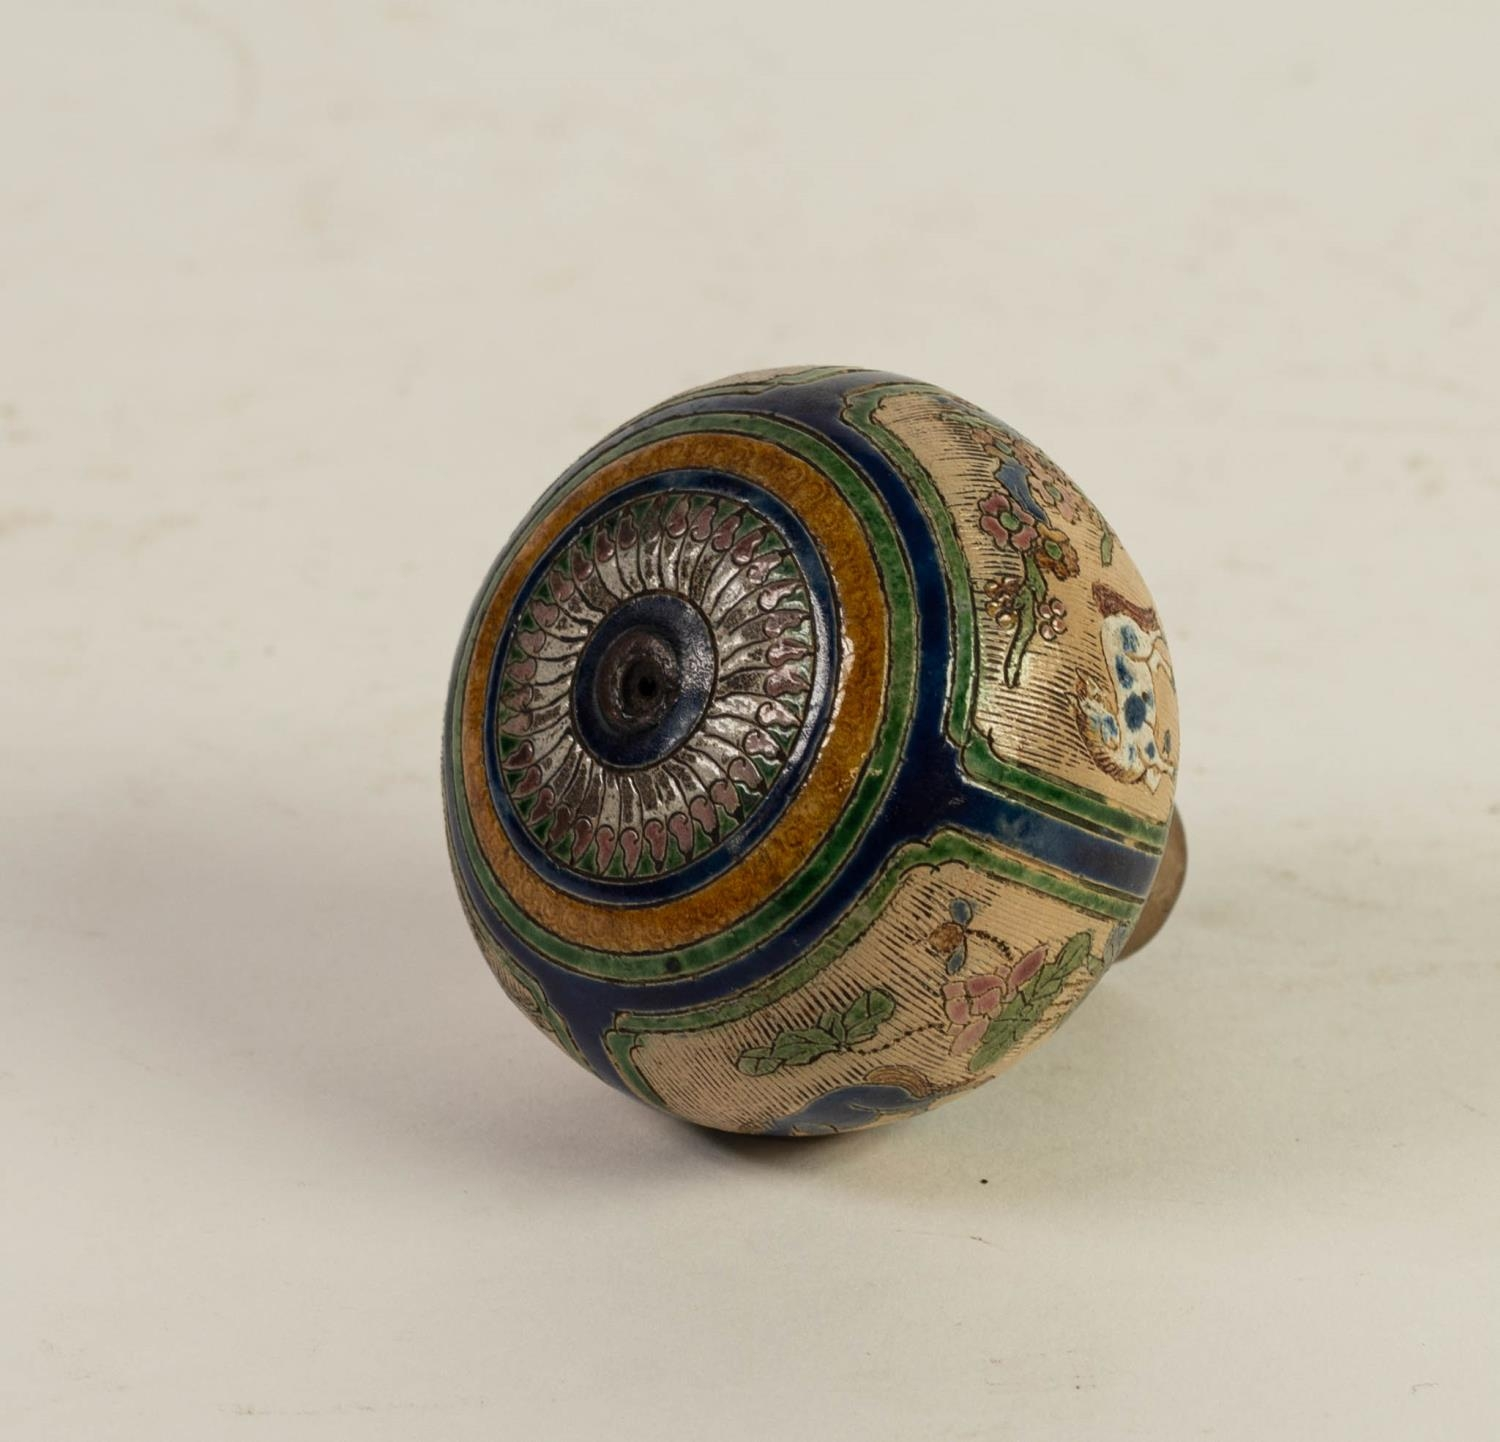 CHINESE QING DYNASTY PORCELANEOUS ORBICULAR KNOB OR FINIAL, incised and enamelled with four panels - Image 6 of 6